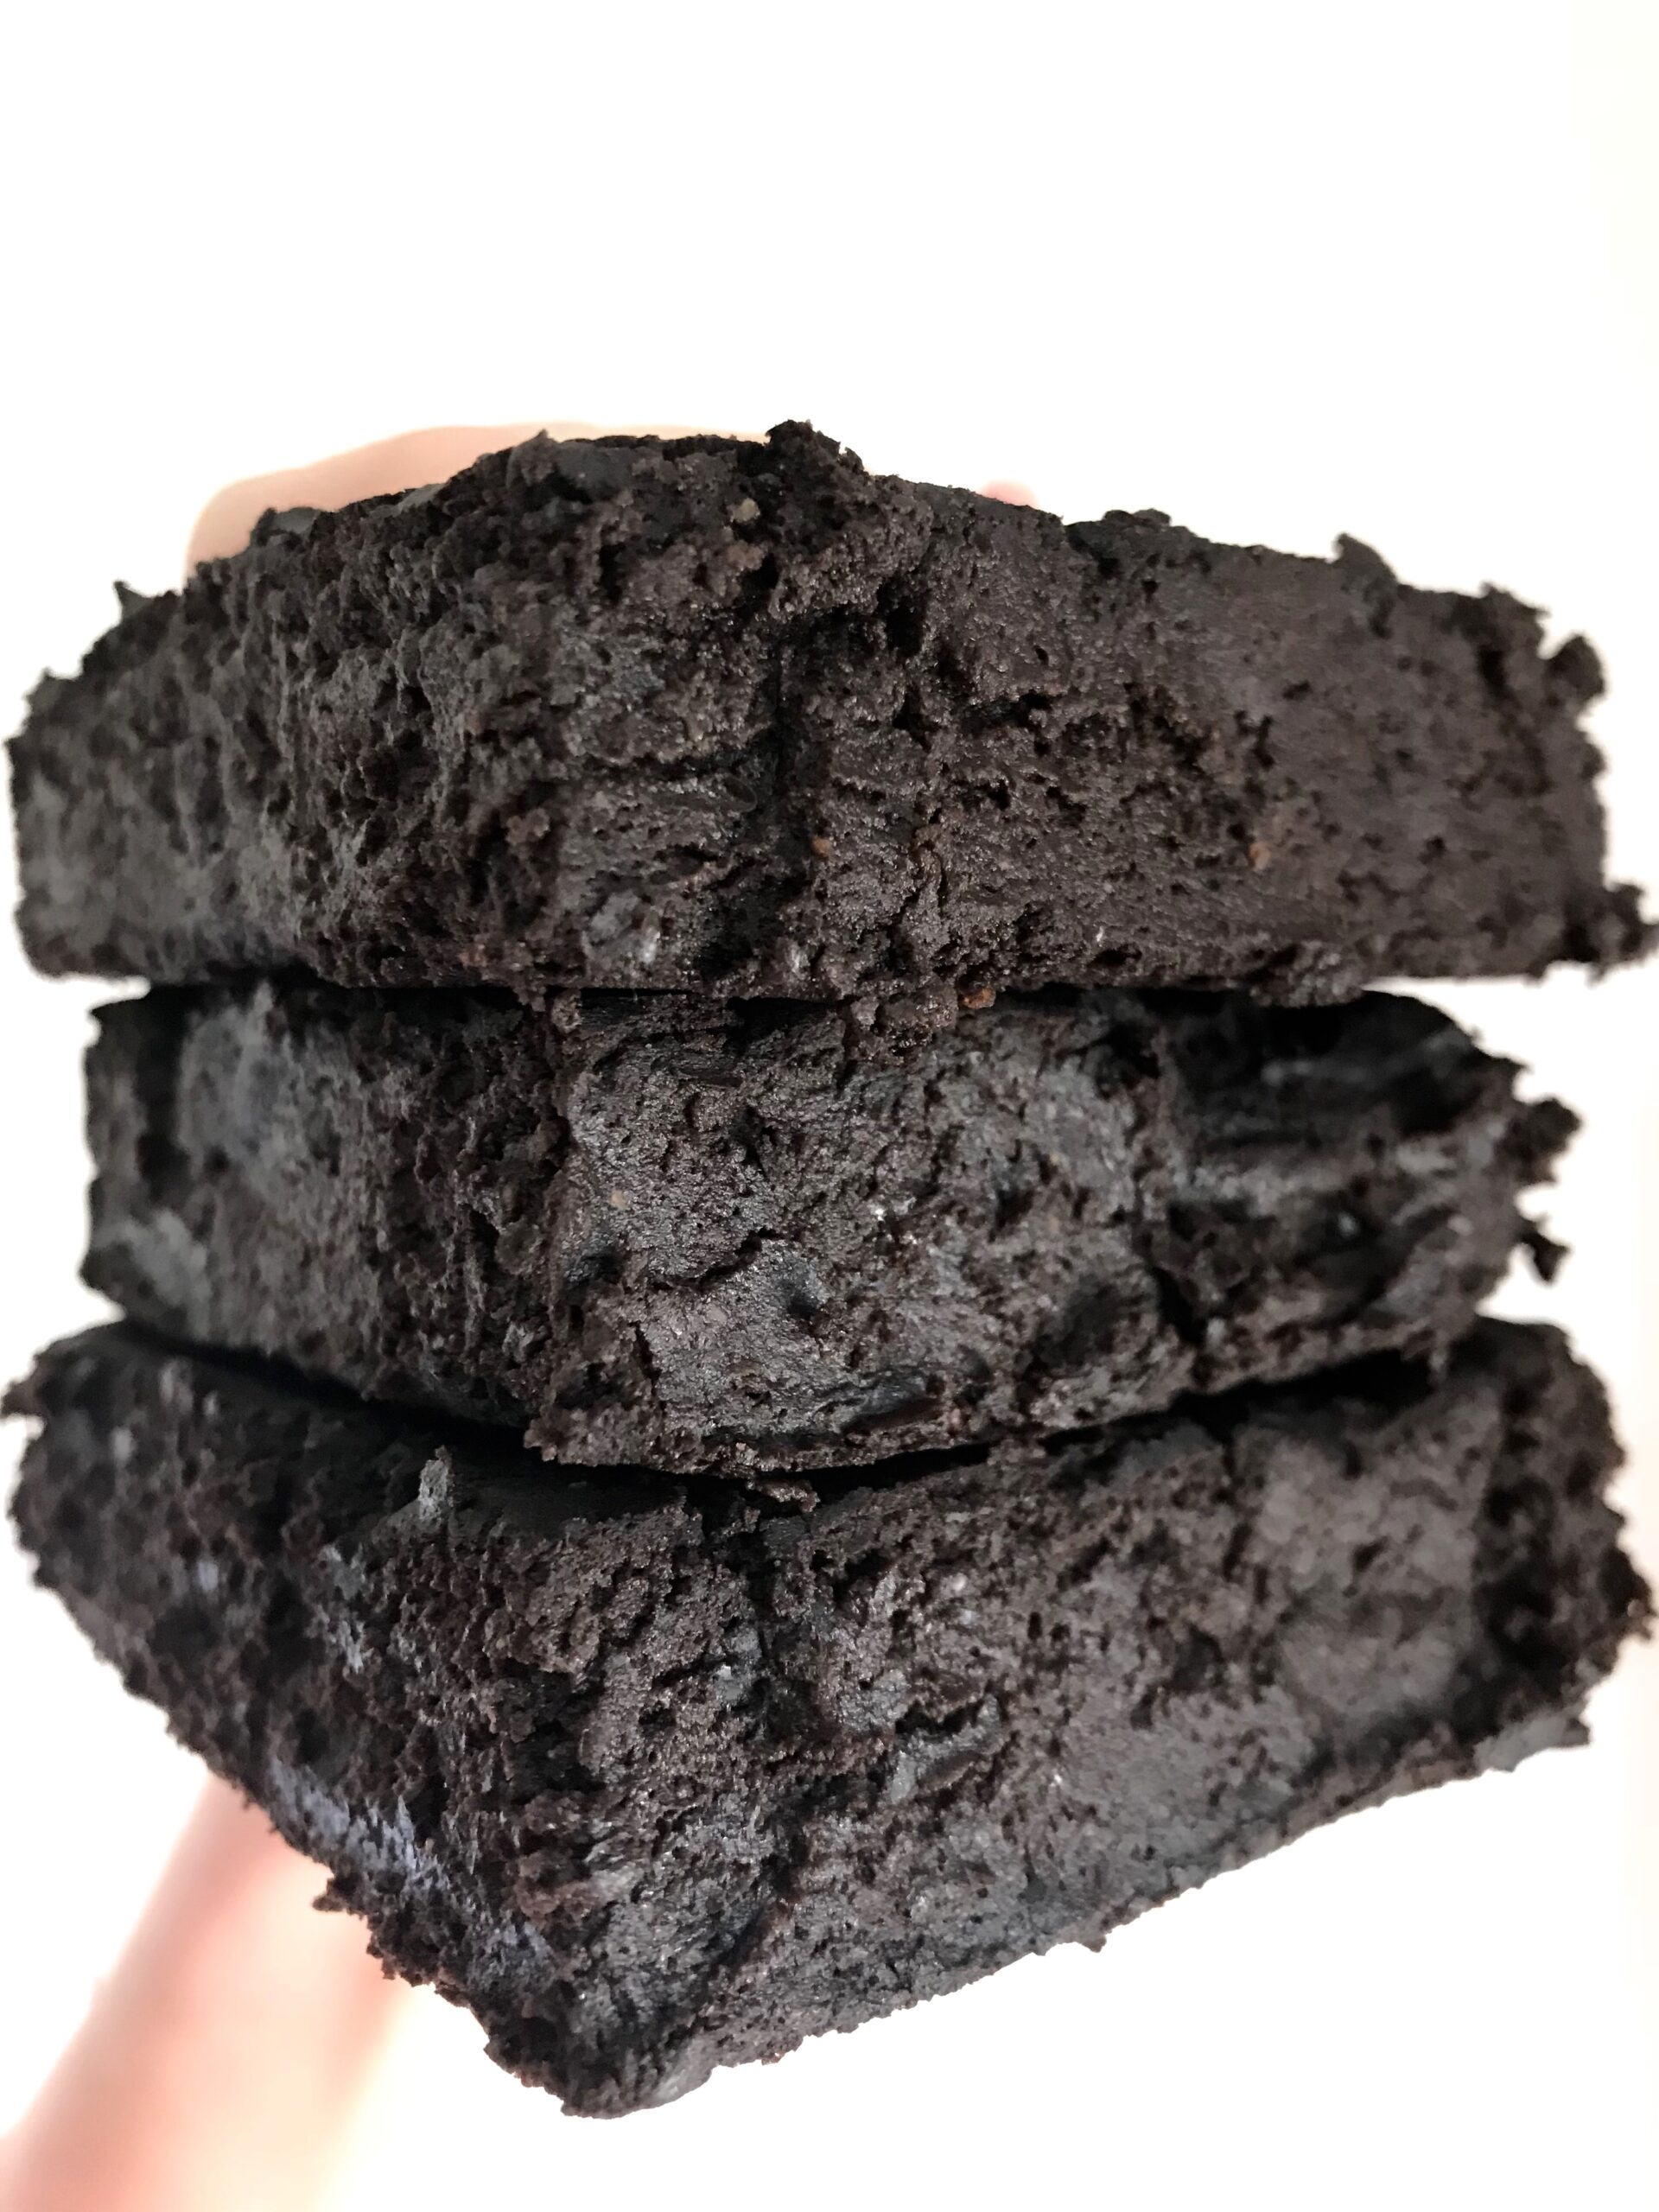 Up-close shot of a stack of Fudgy Black Bean Brownies